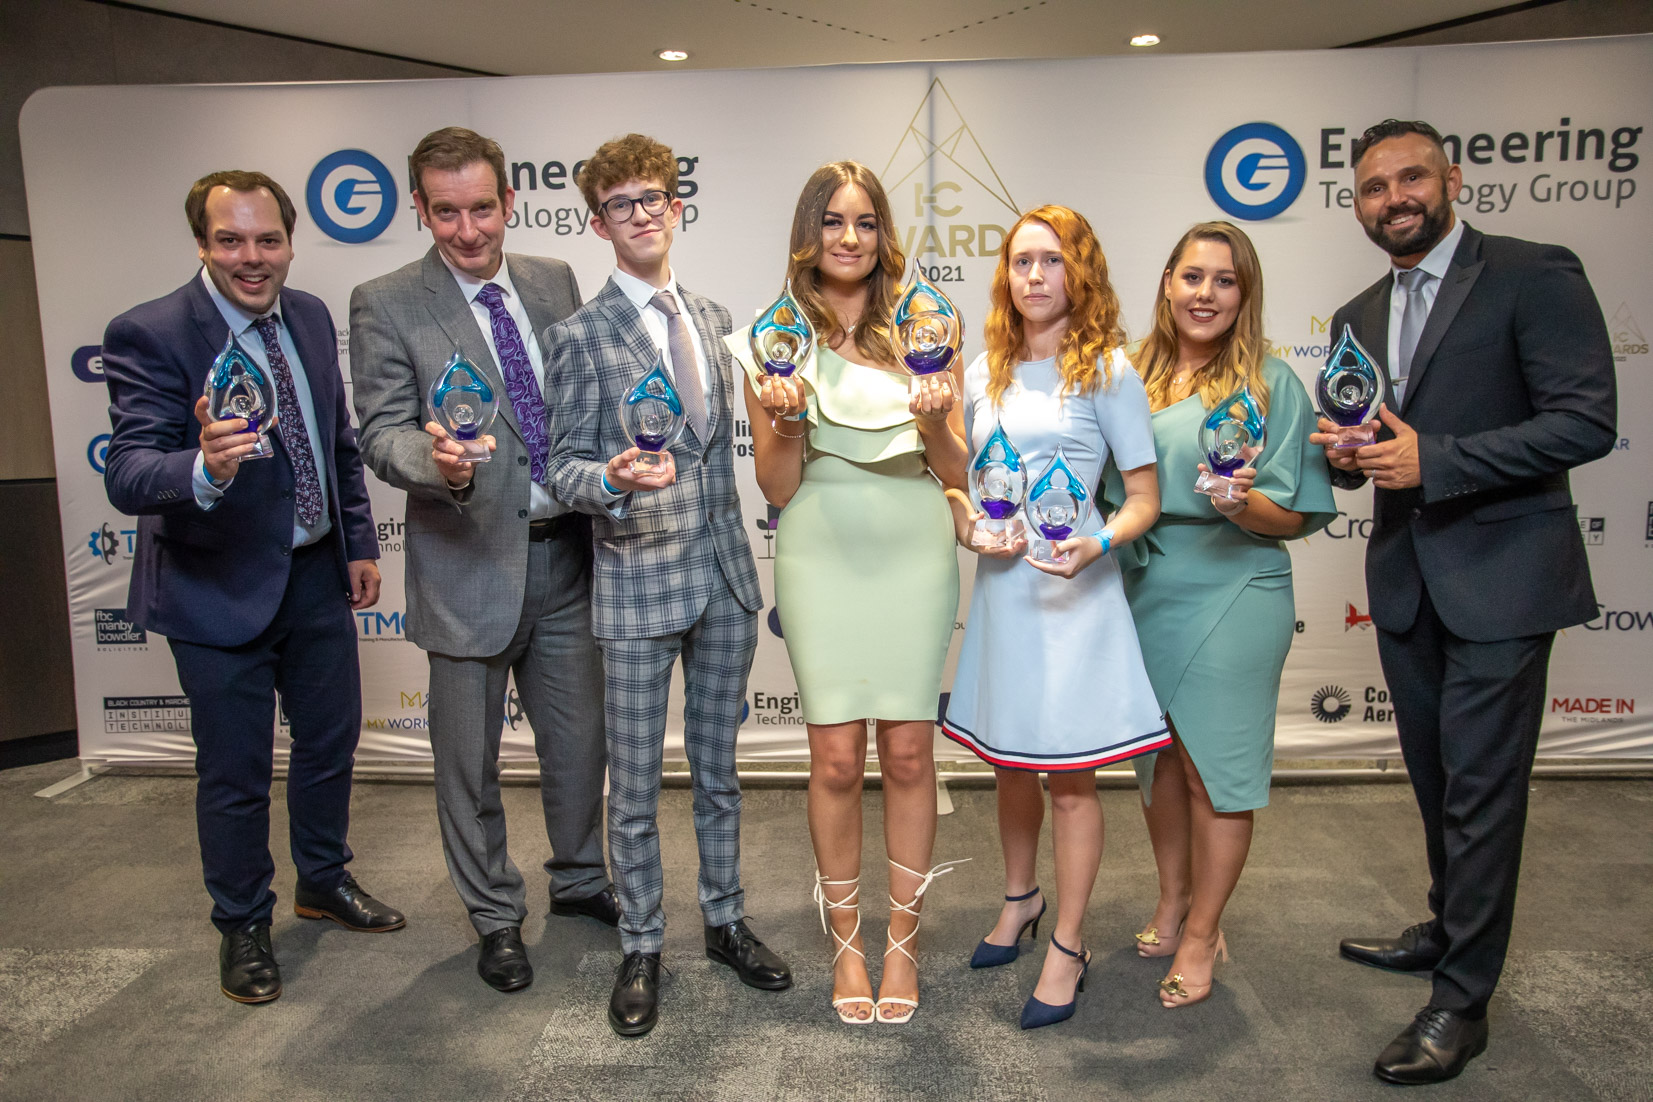 In-Comm Training Awards 2021 winners. Image courtesy of In-Comm Training